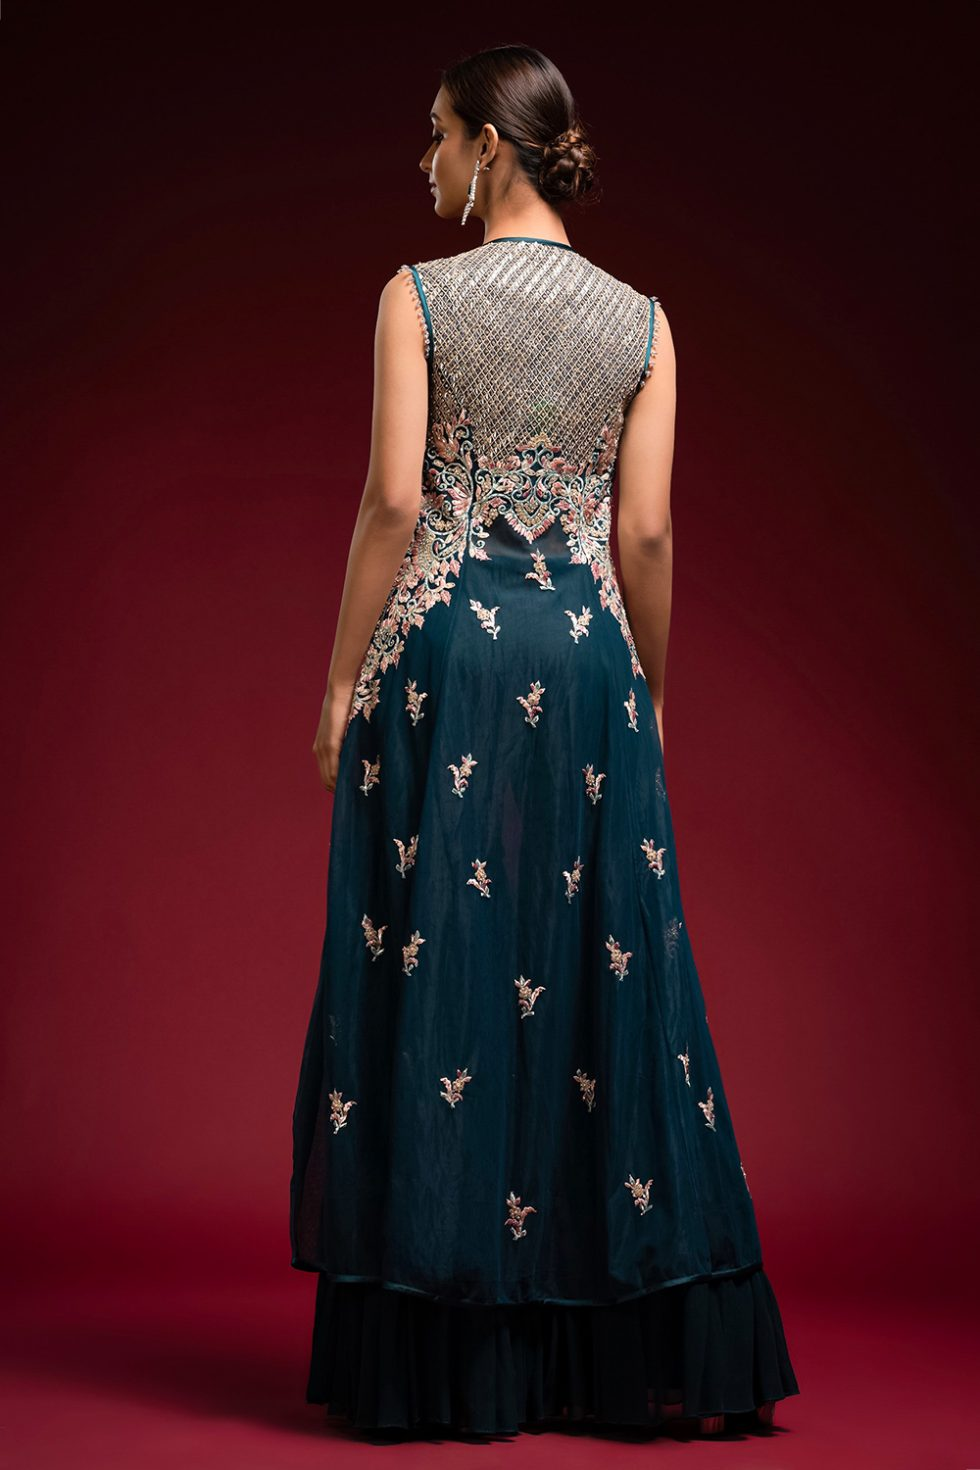 TIERED SHARARA PANT SET WITH A LONG JACKET STYLE KURTA TOP WITH MULTI COLOURED EMBROIDERY AND SILVER EMBELLISHMENTS.